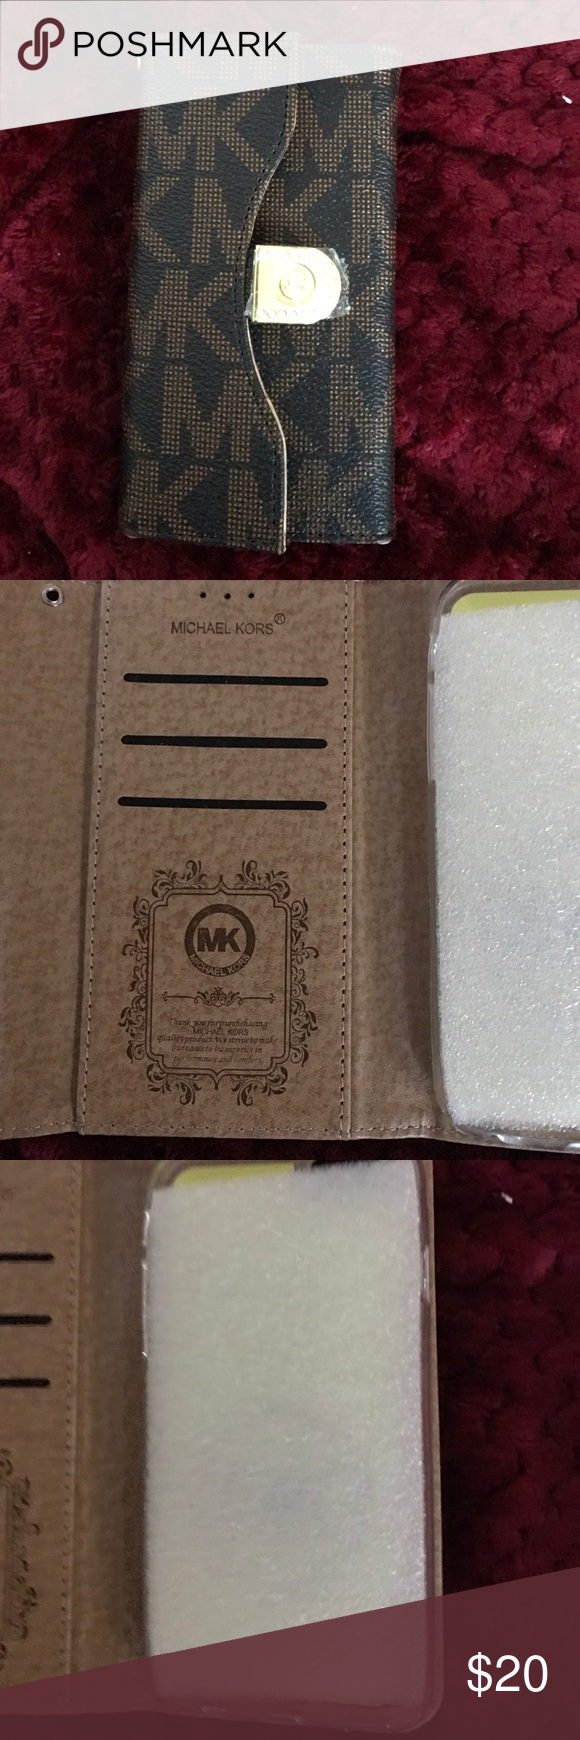 MK monogram phone case This is a brand new MK phone case bought at TJ Max never used. Michael Kors Accessories Phone Cases